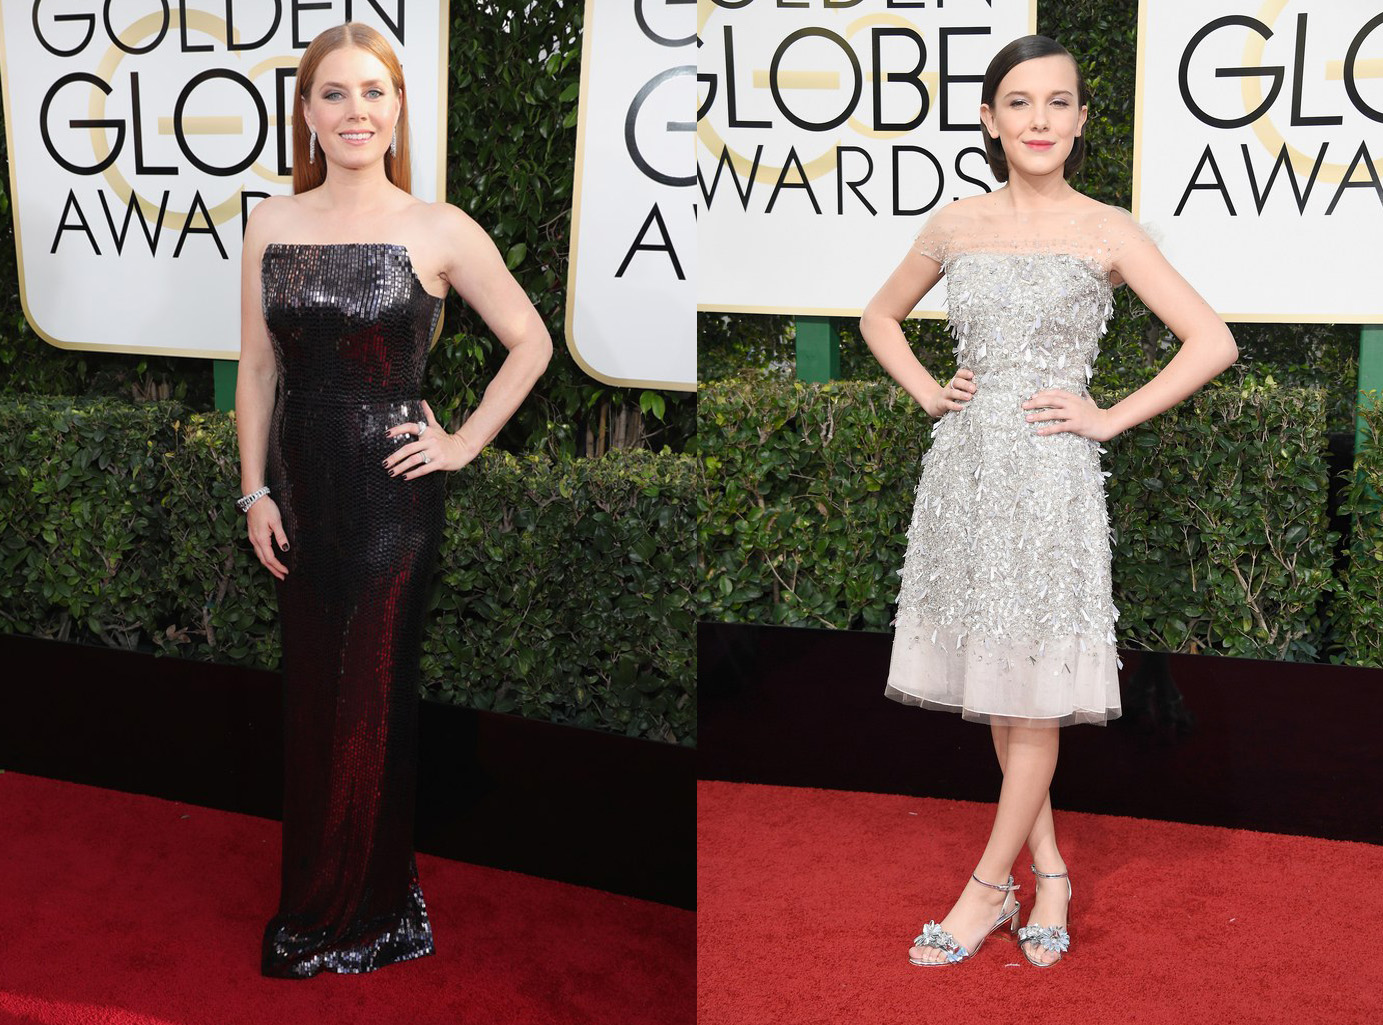 golden-globes-2017-karpet-merah-2-2fee00e2e7cd6a671bc4b0abf25e429c.JPG